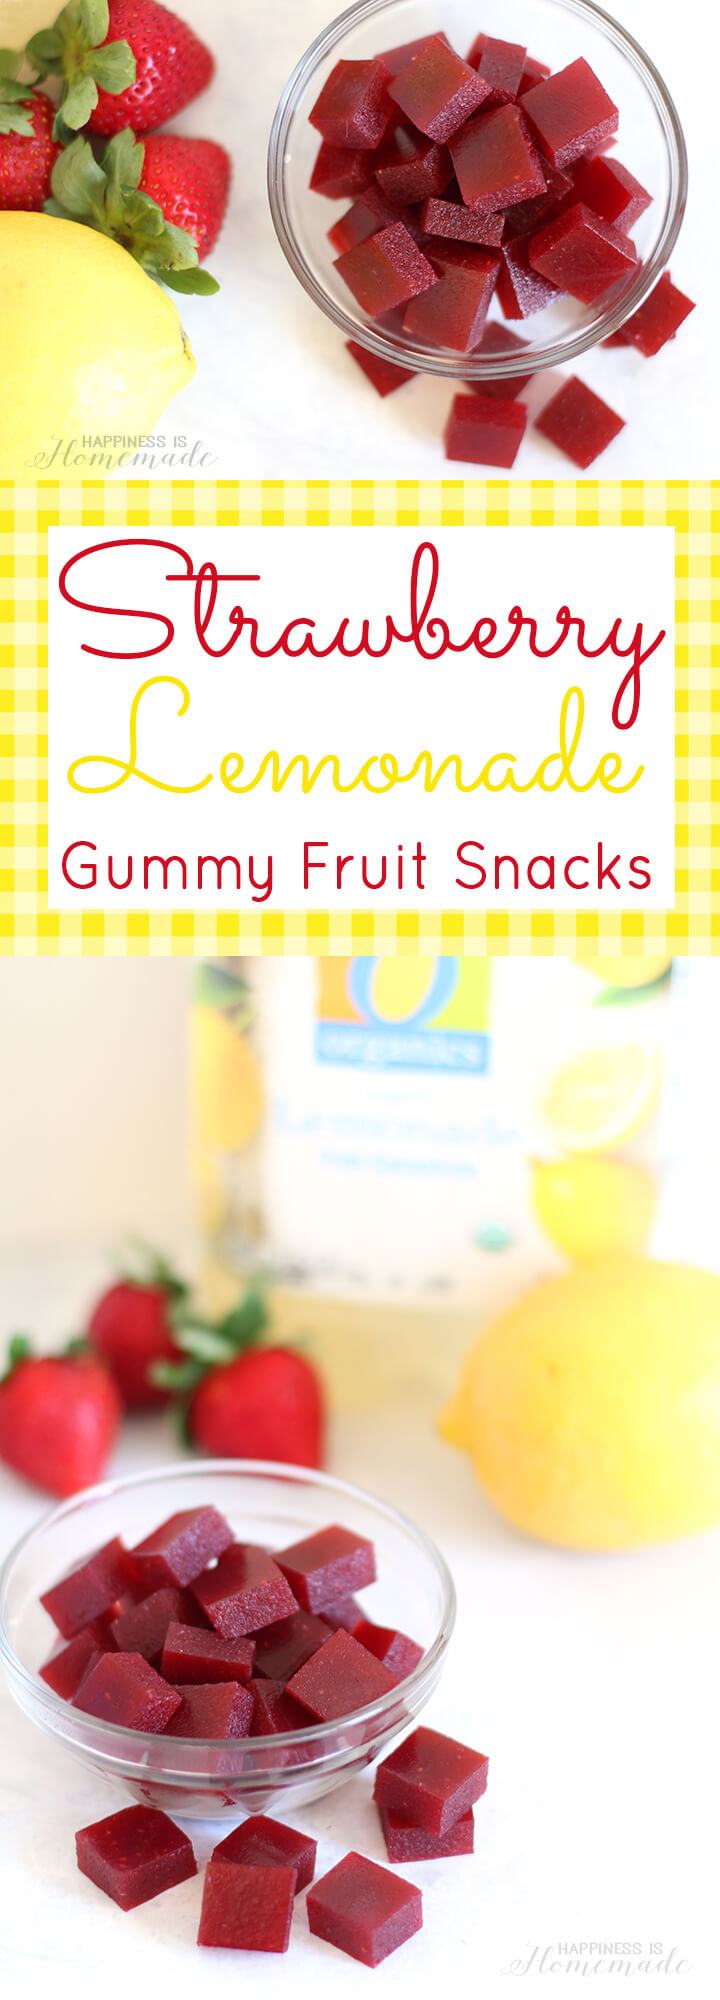 Strawberry Lemonade Gummy Fruit Snacks Happiness Is Homemade